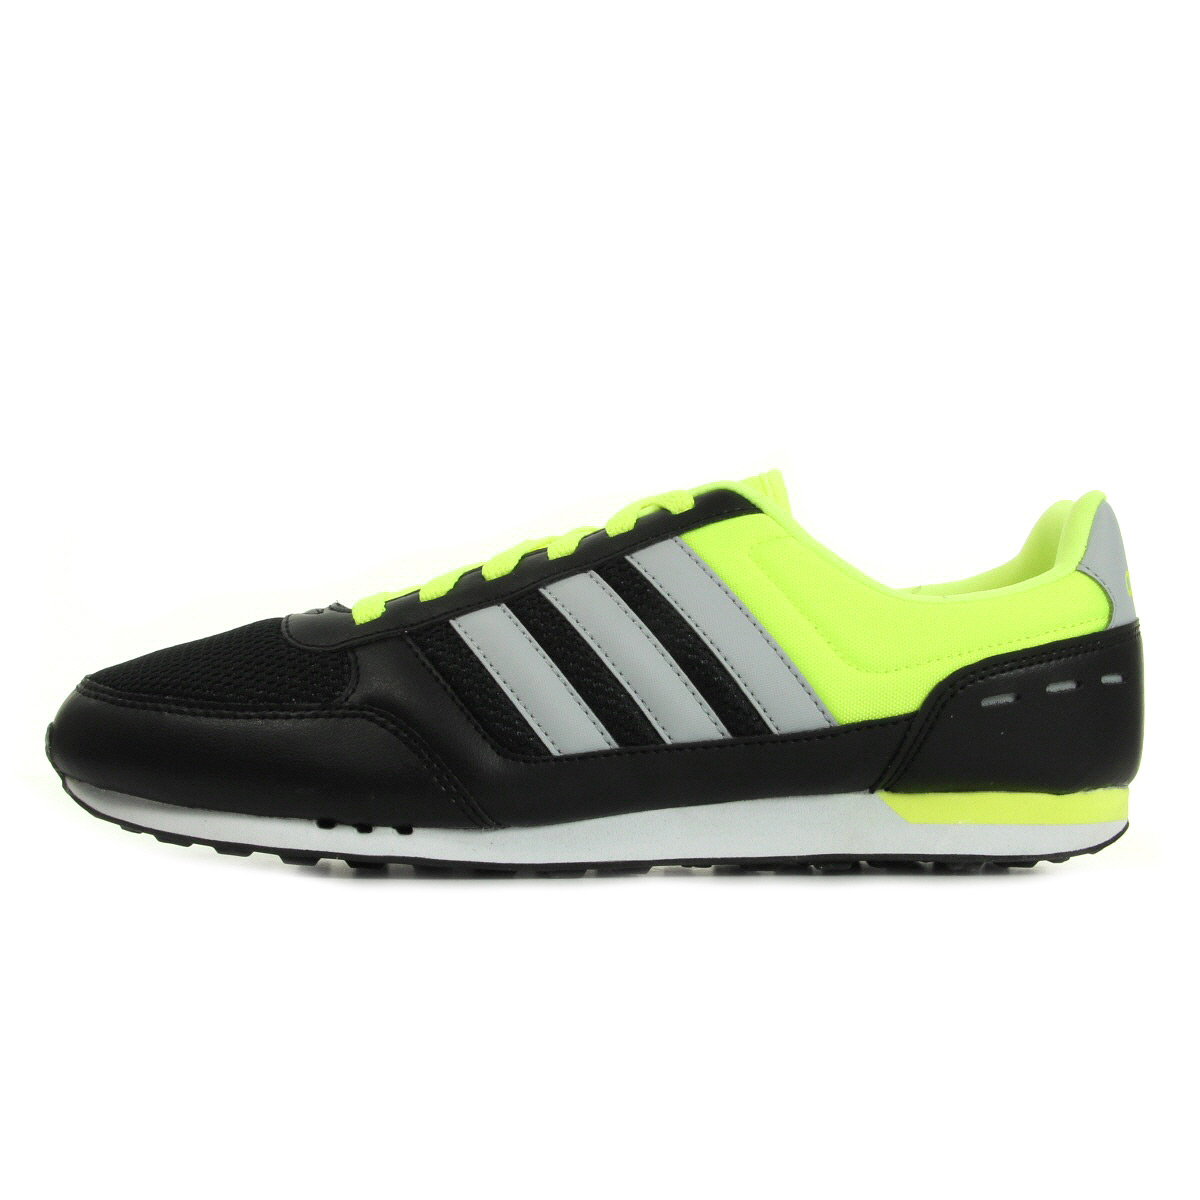 Adidas Neo Baskets City Racer